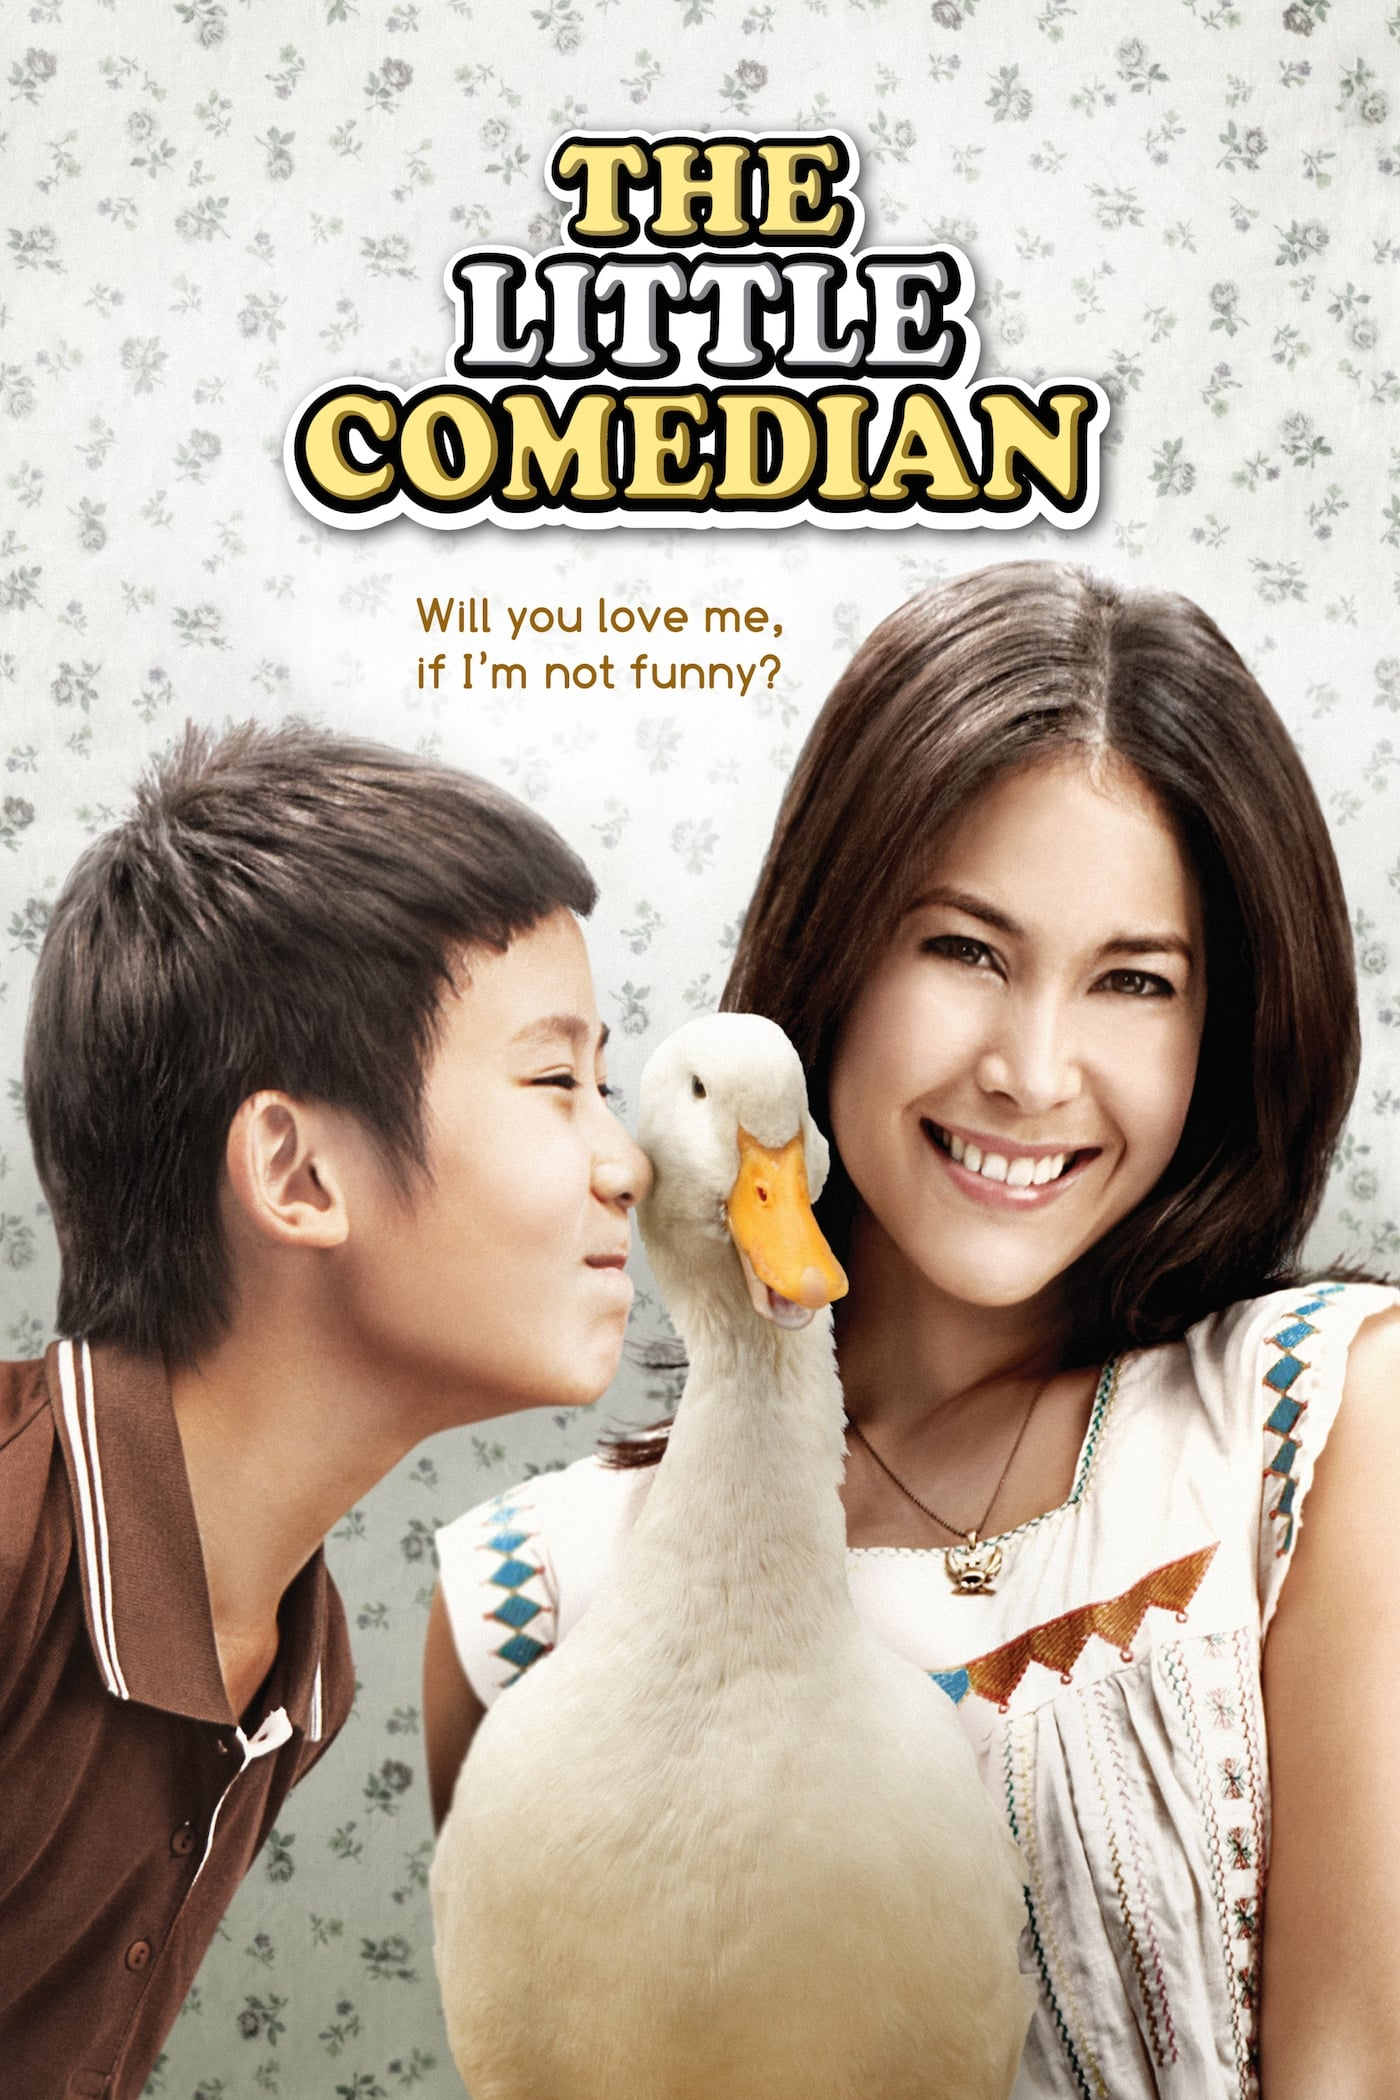 The Little Comedian (2010)